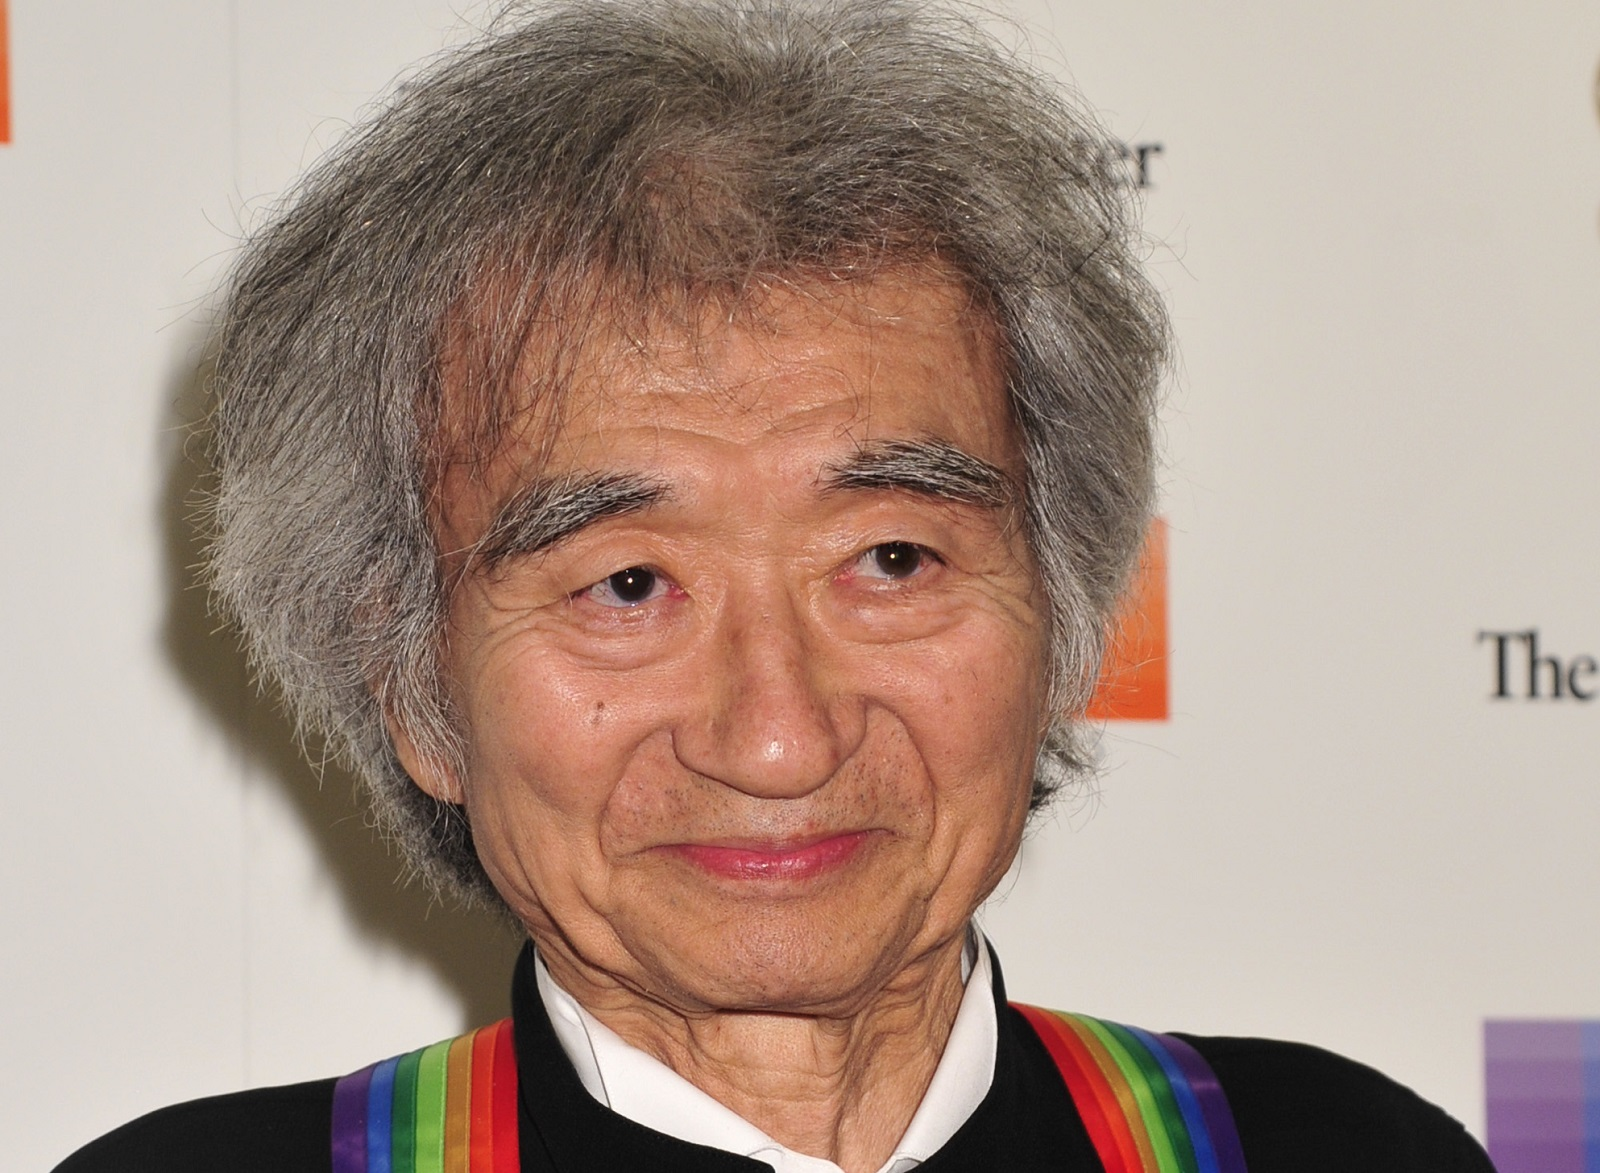 Seiji Ozawa at the 38th Annual Kennedy Center Honors Gala at the Kennedy Center for the Performing Arts in 2015. (Kris Connor/Getty Images)